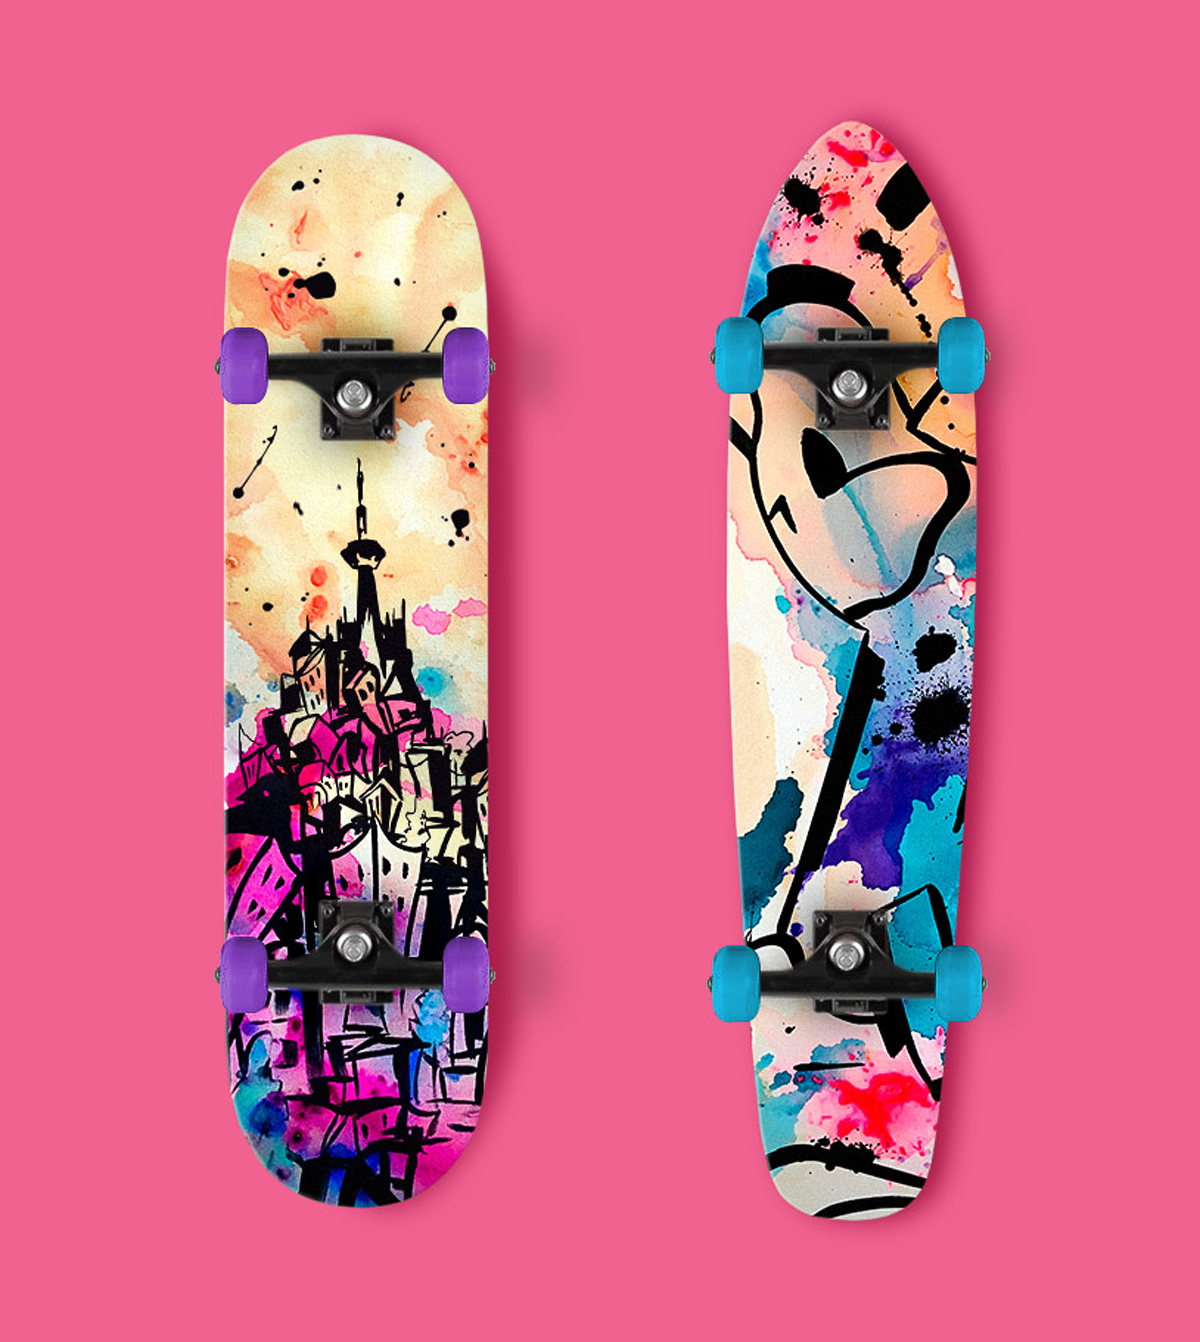 Tosh Jeffrey Skateboard Design by Furia